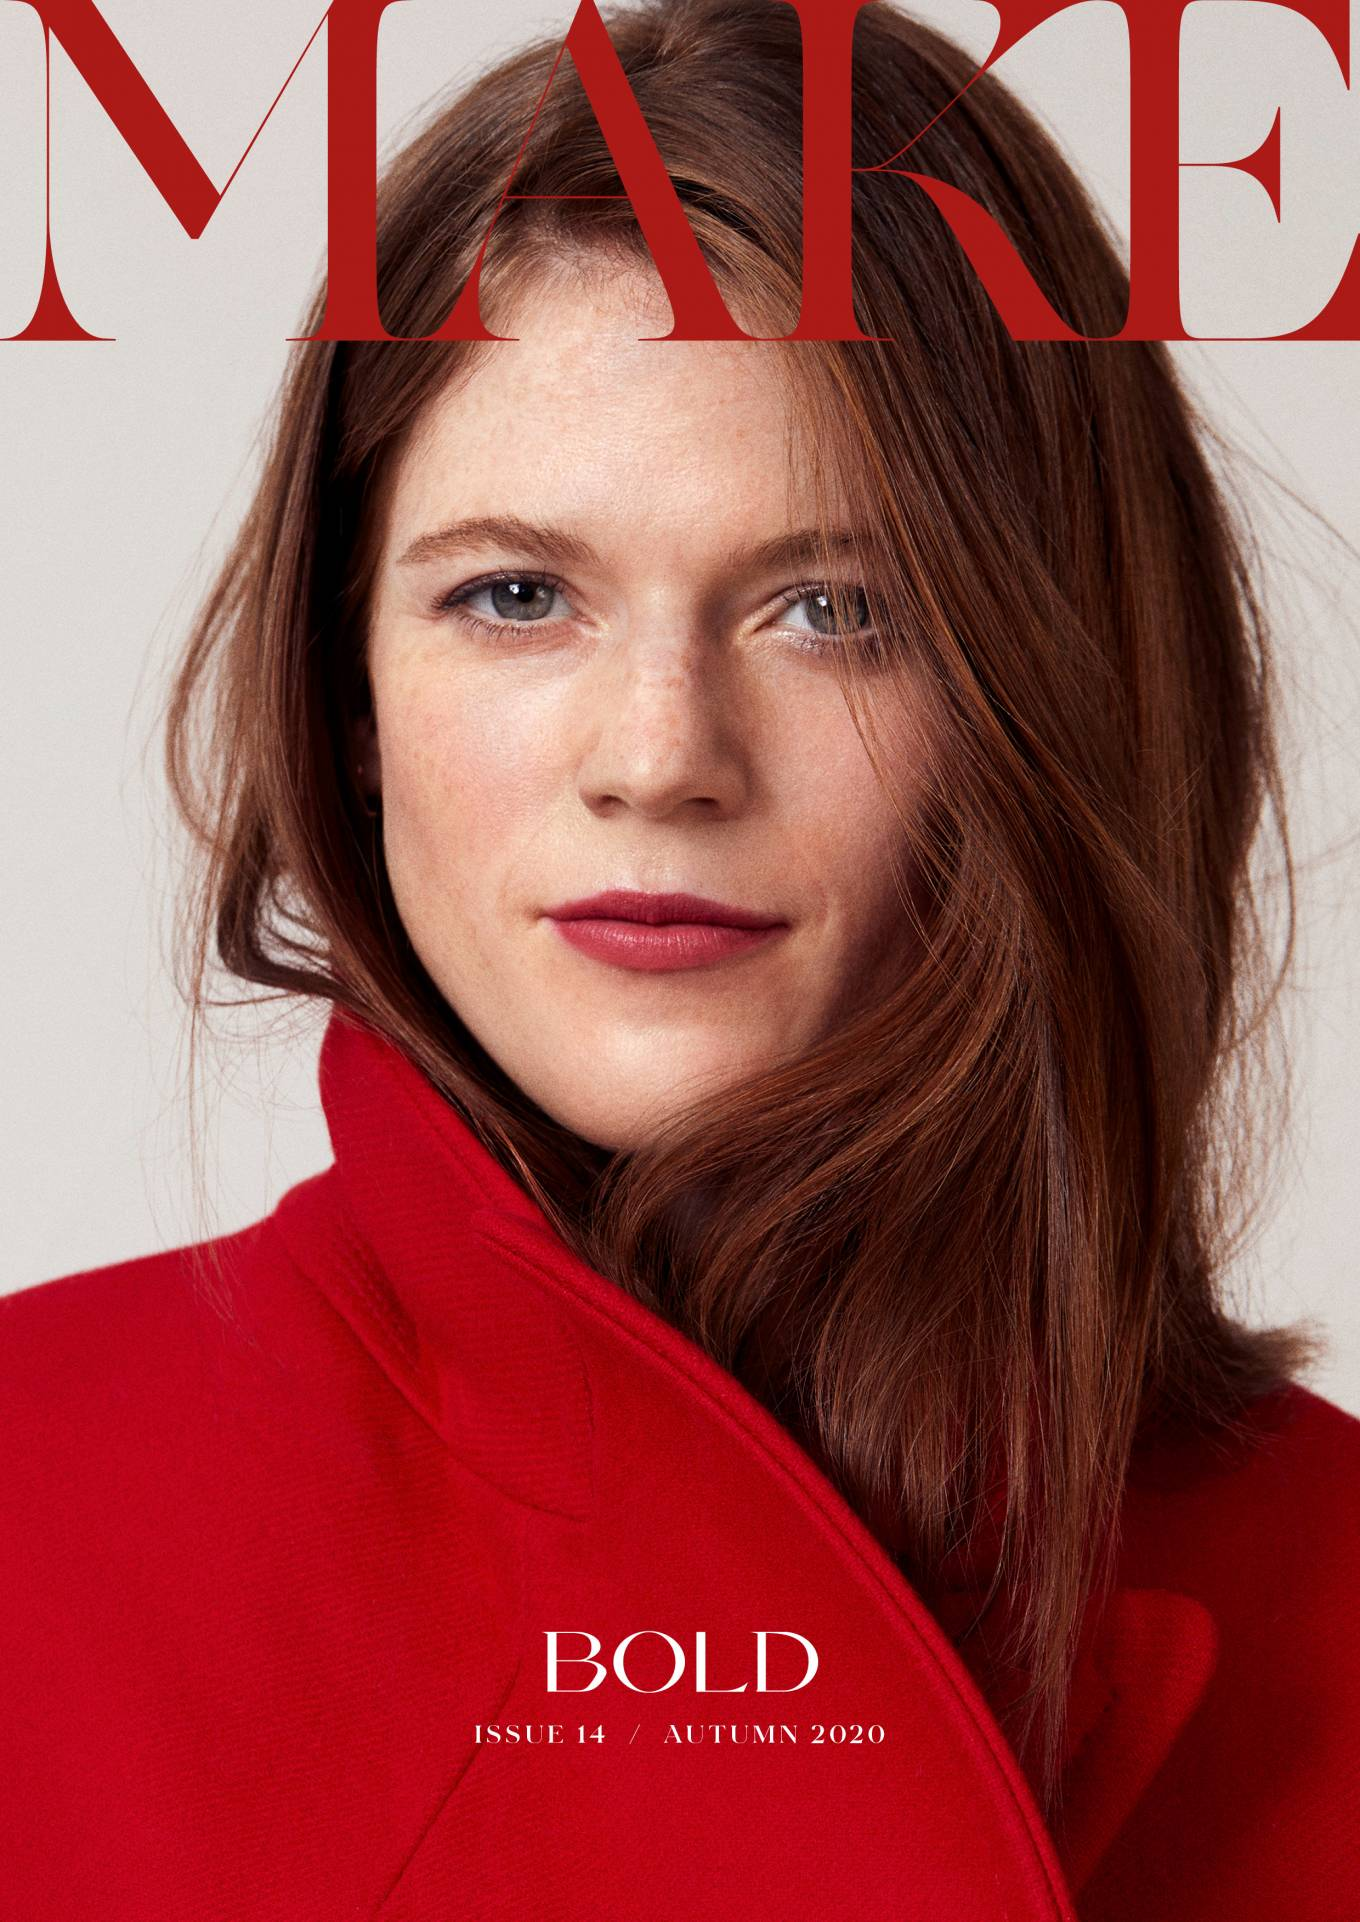 Rose Leslie 2020 : Rose Leslie – Make Magazine Issue 14 (Autumn 2020)-03